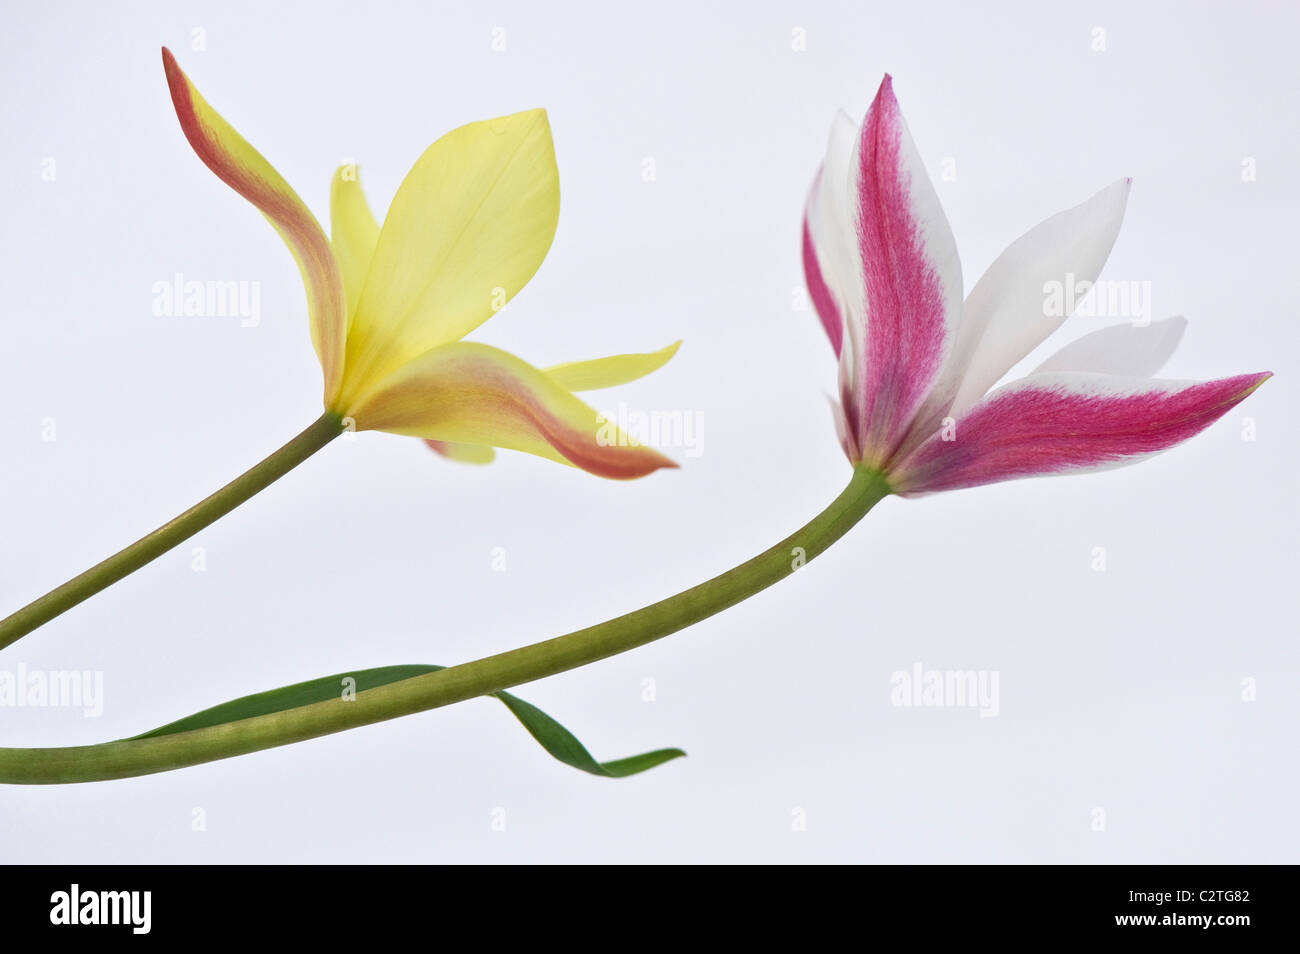 Tulip - Peppermint Stick and Tulip Tarda - Stock Image